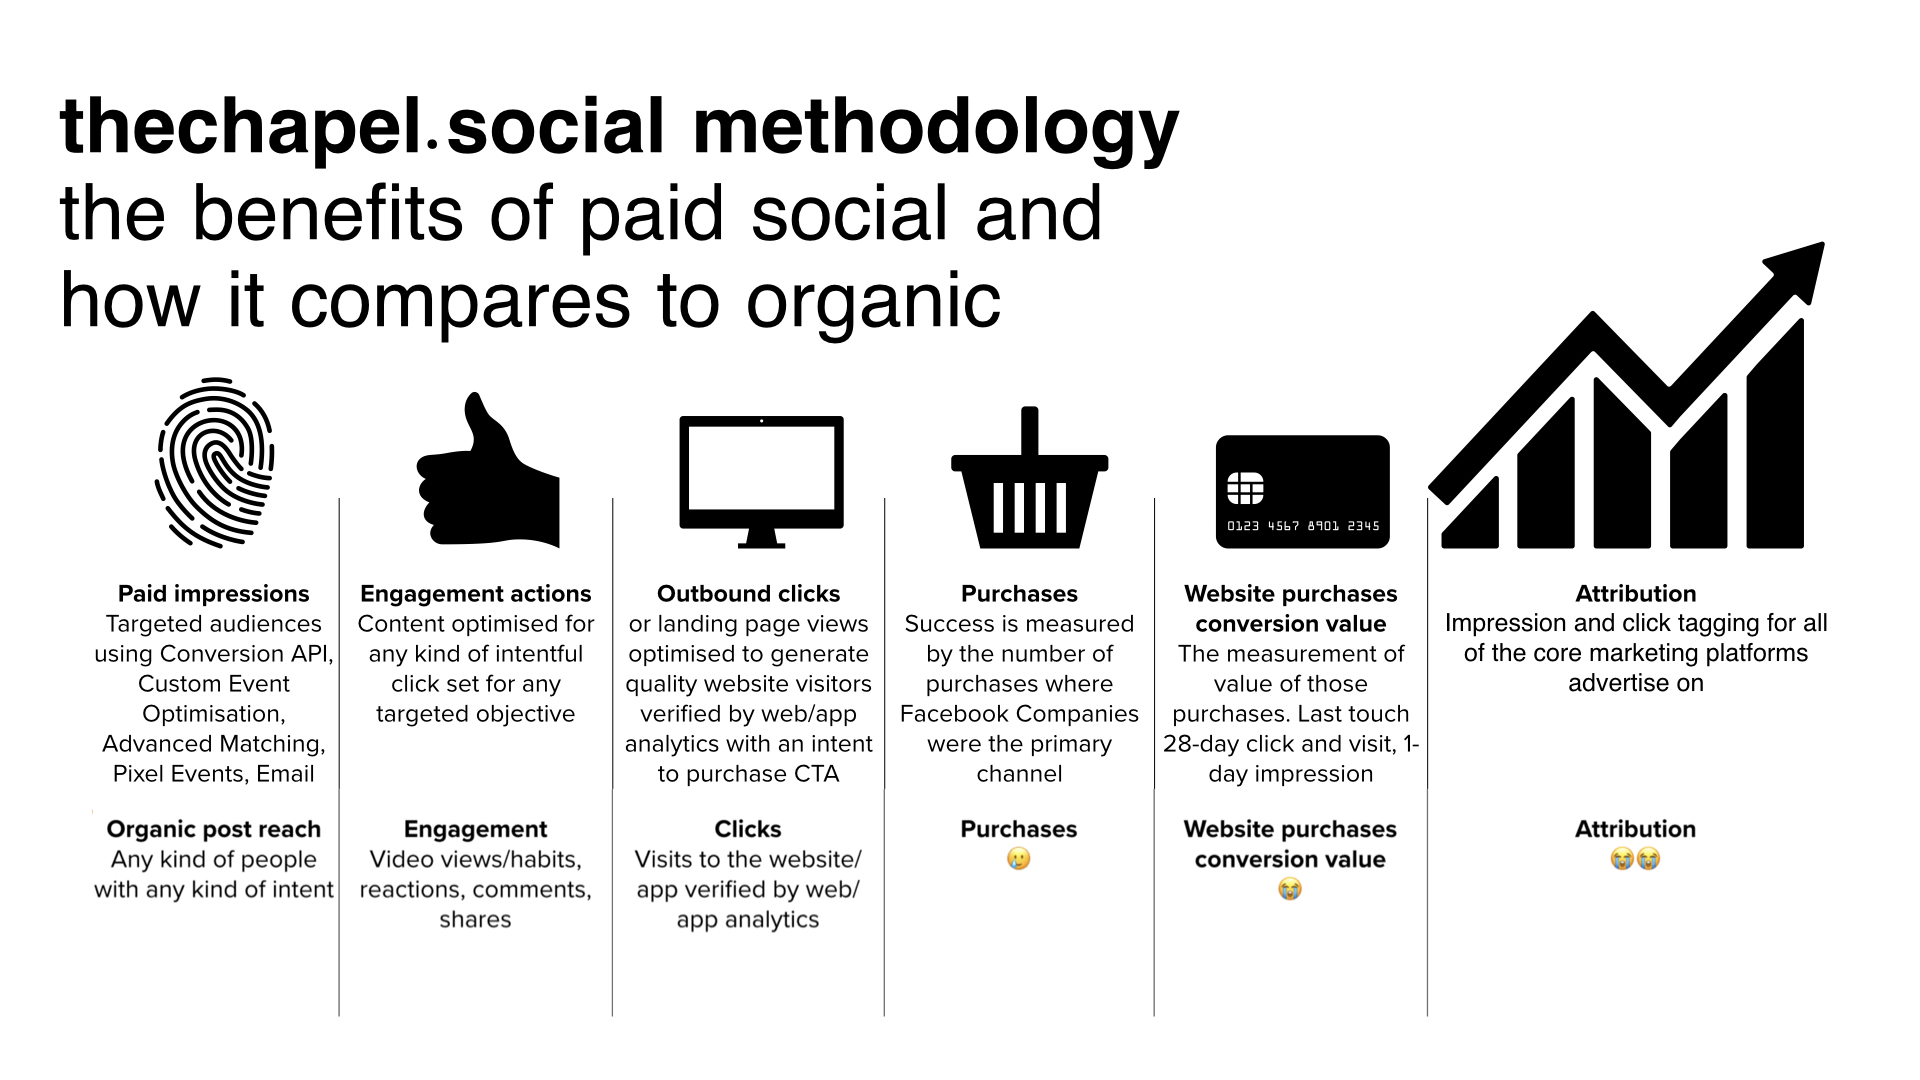 thechapel.social methodology the benefits of paid social and  how it compares to organic